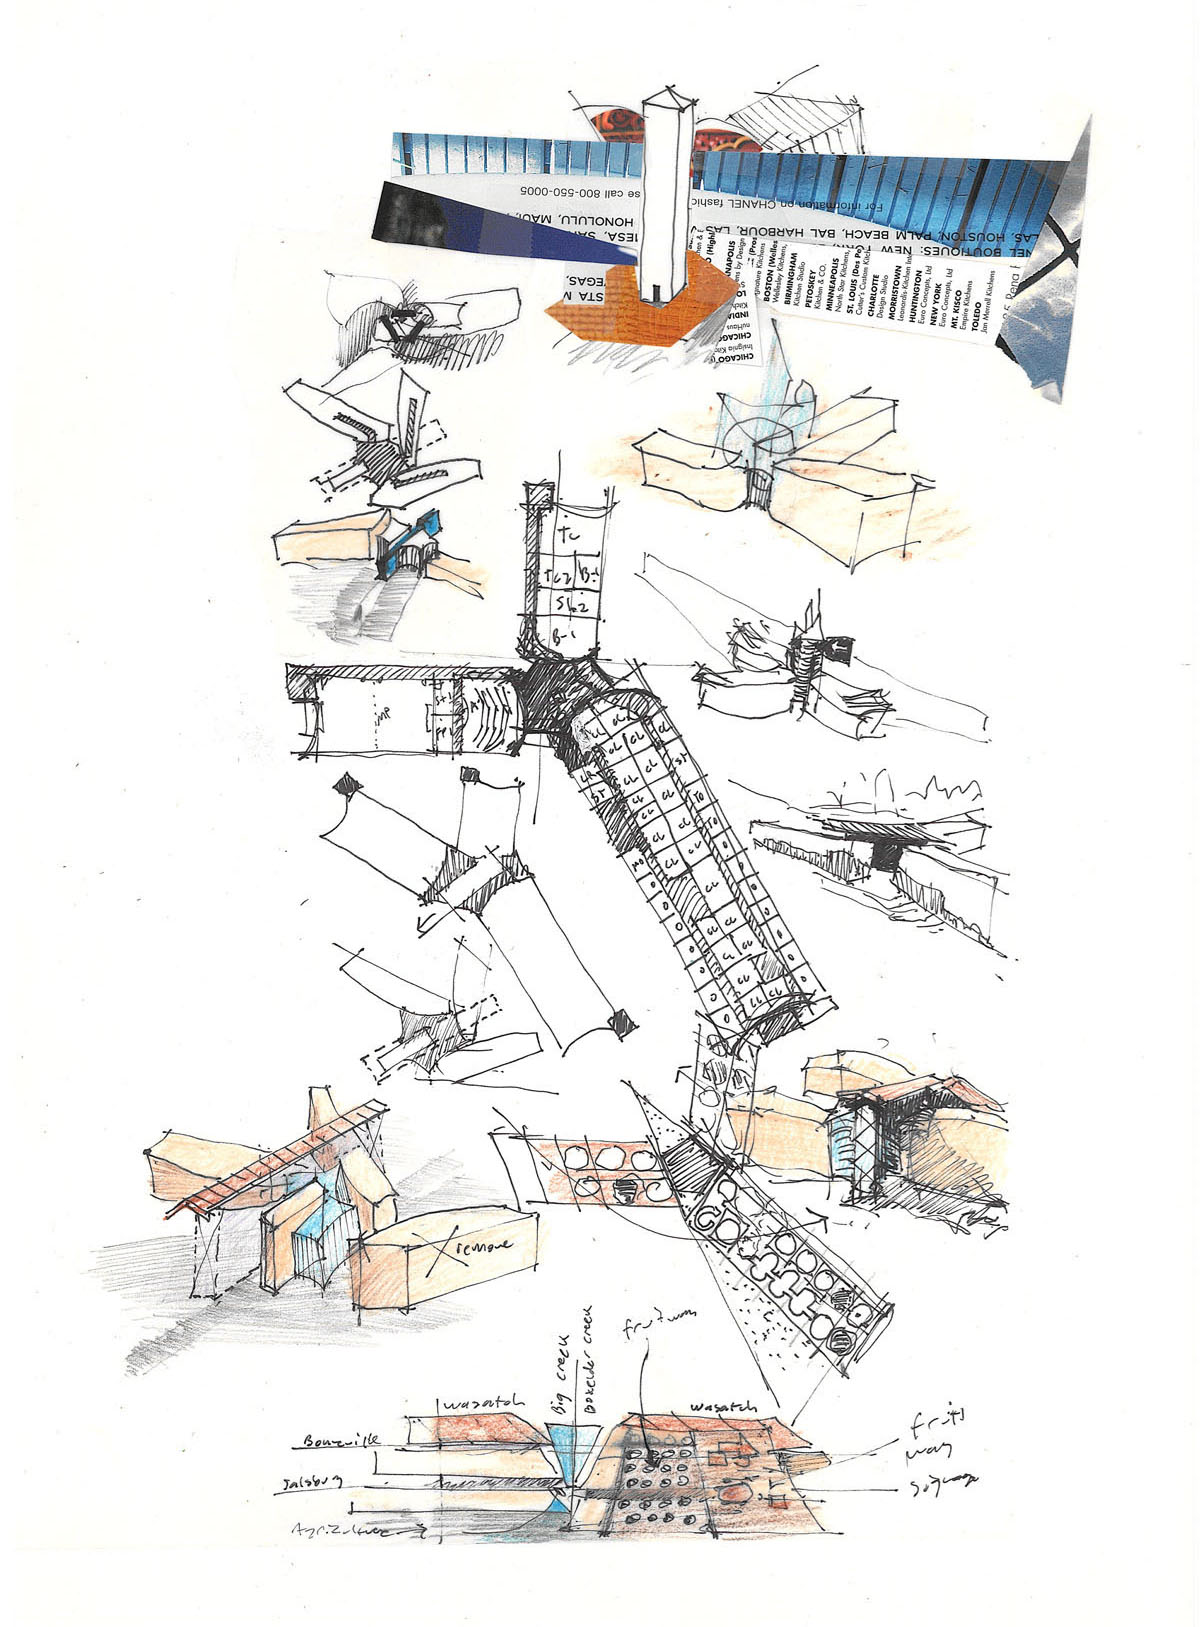 Collage sketch of building layout concepts with four wings in a X-like configuration.